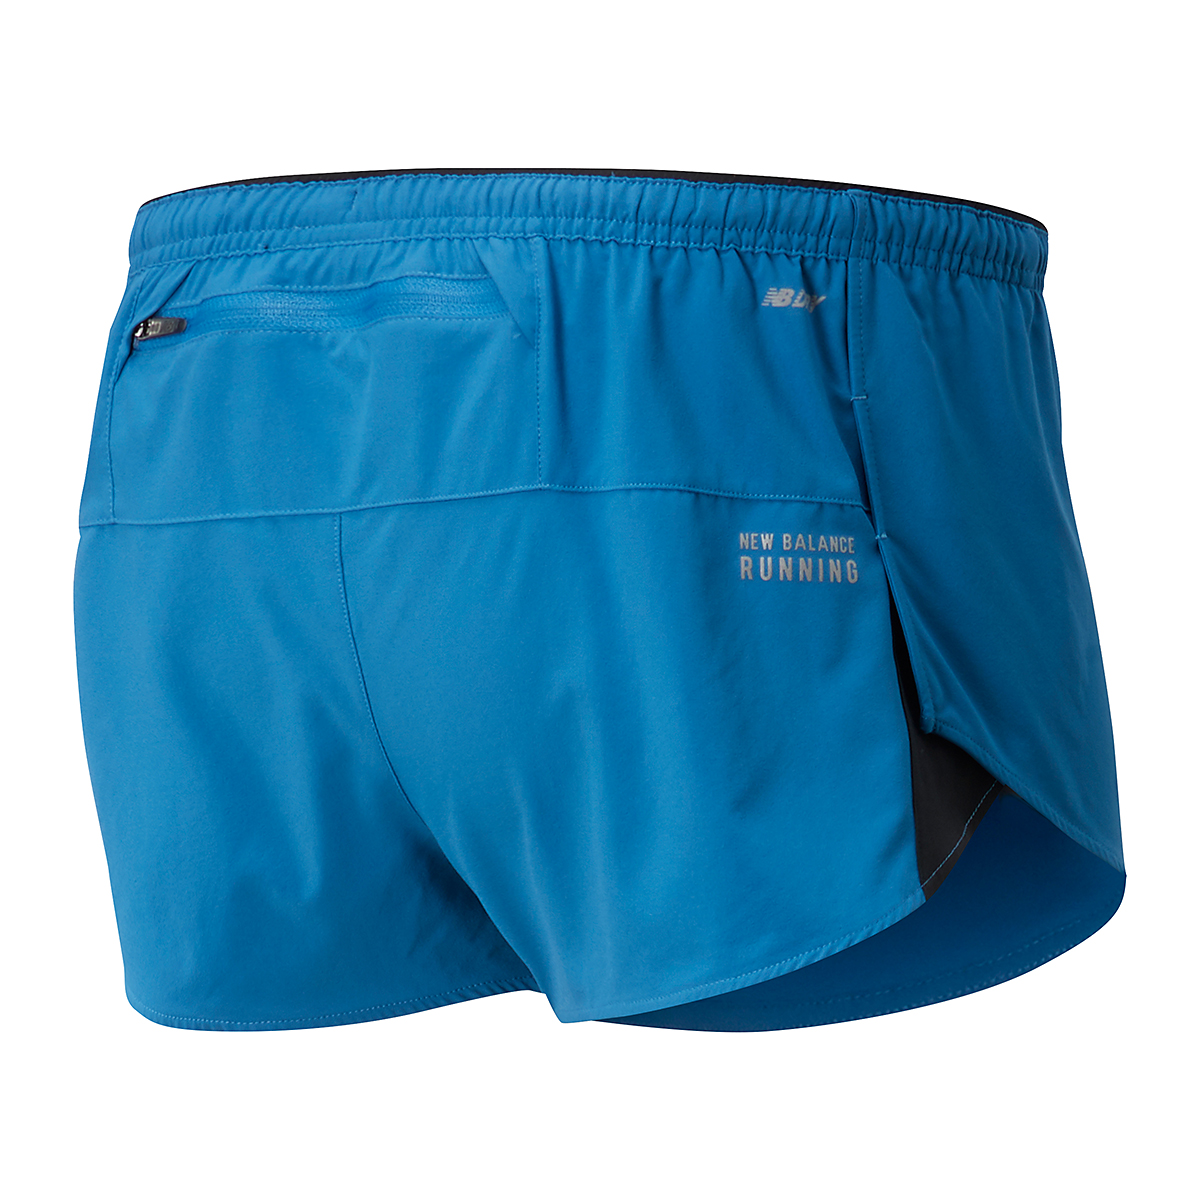 Men's New Balance Impact Run 3In Split Short  - Color: Mako Blue - Size: S, Mako Blue, large, image 2